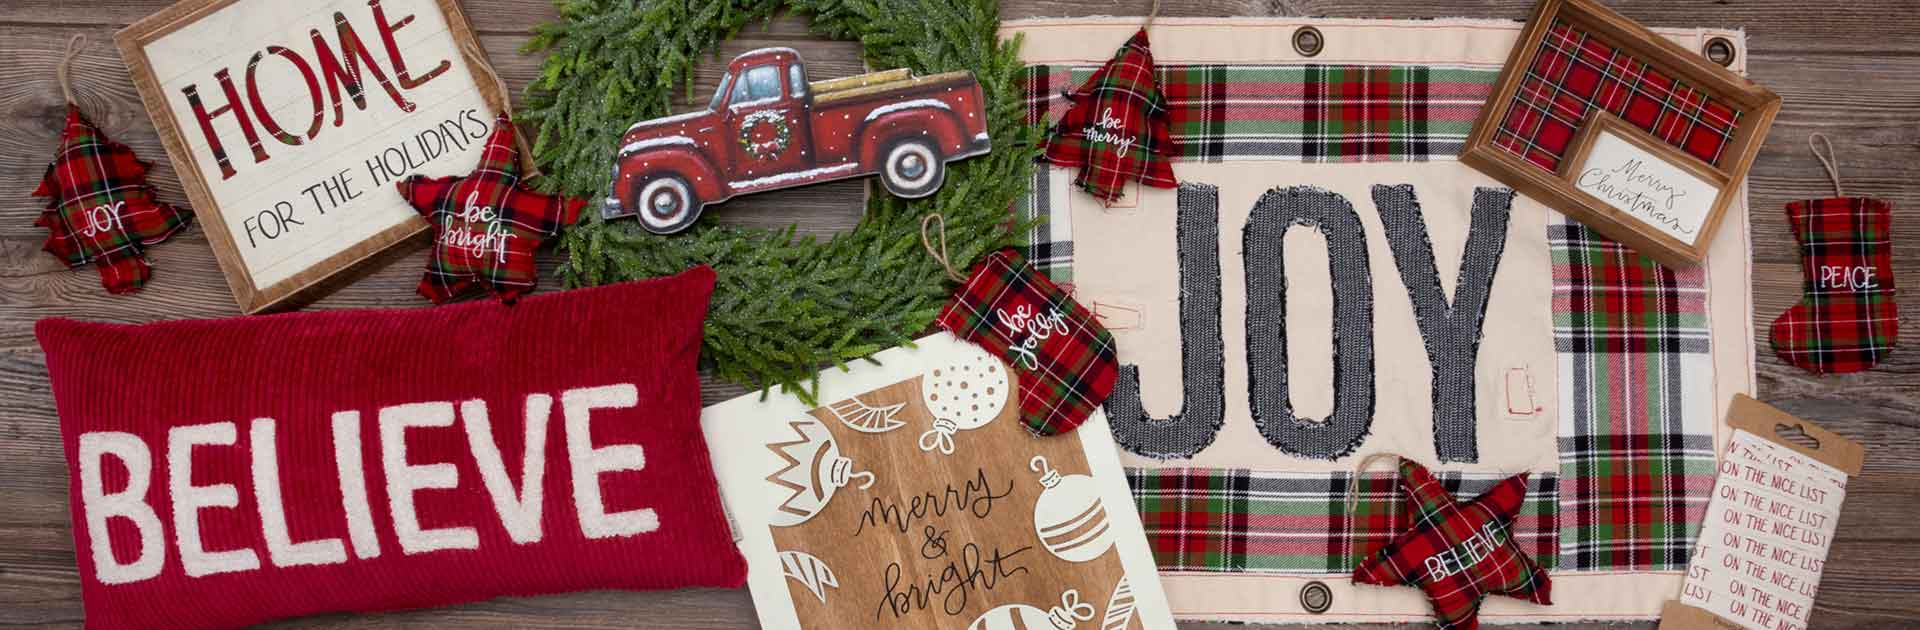 2020-Christmas-Plaid-Gifts-Primitives-by-Kathy-1960x630.jpg